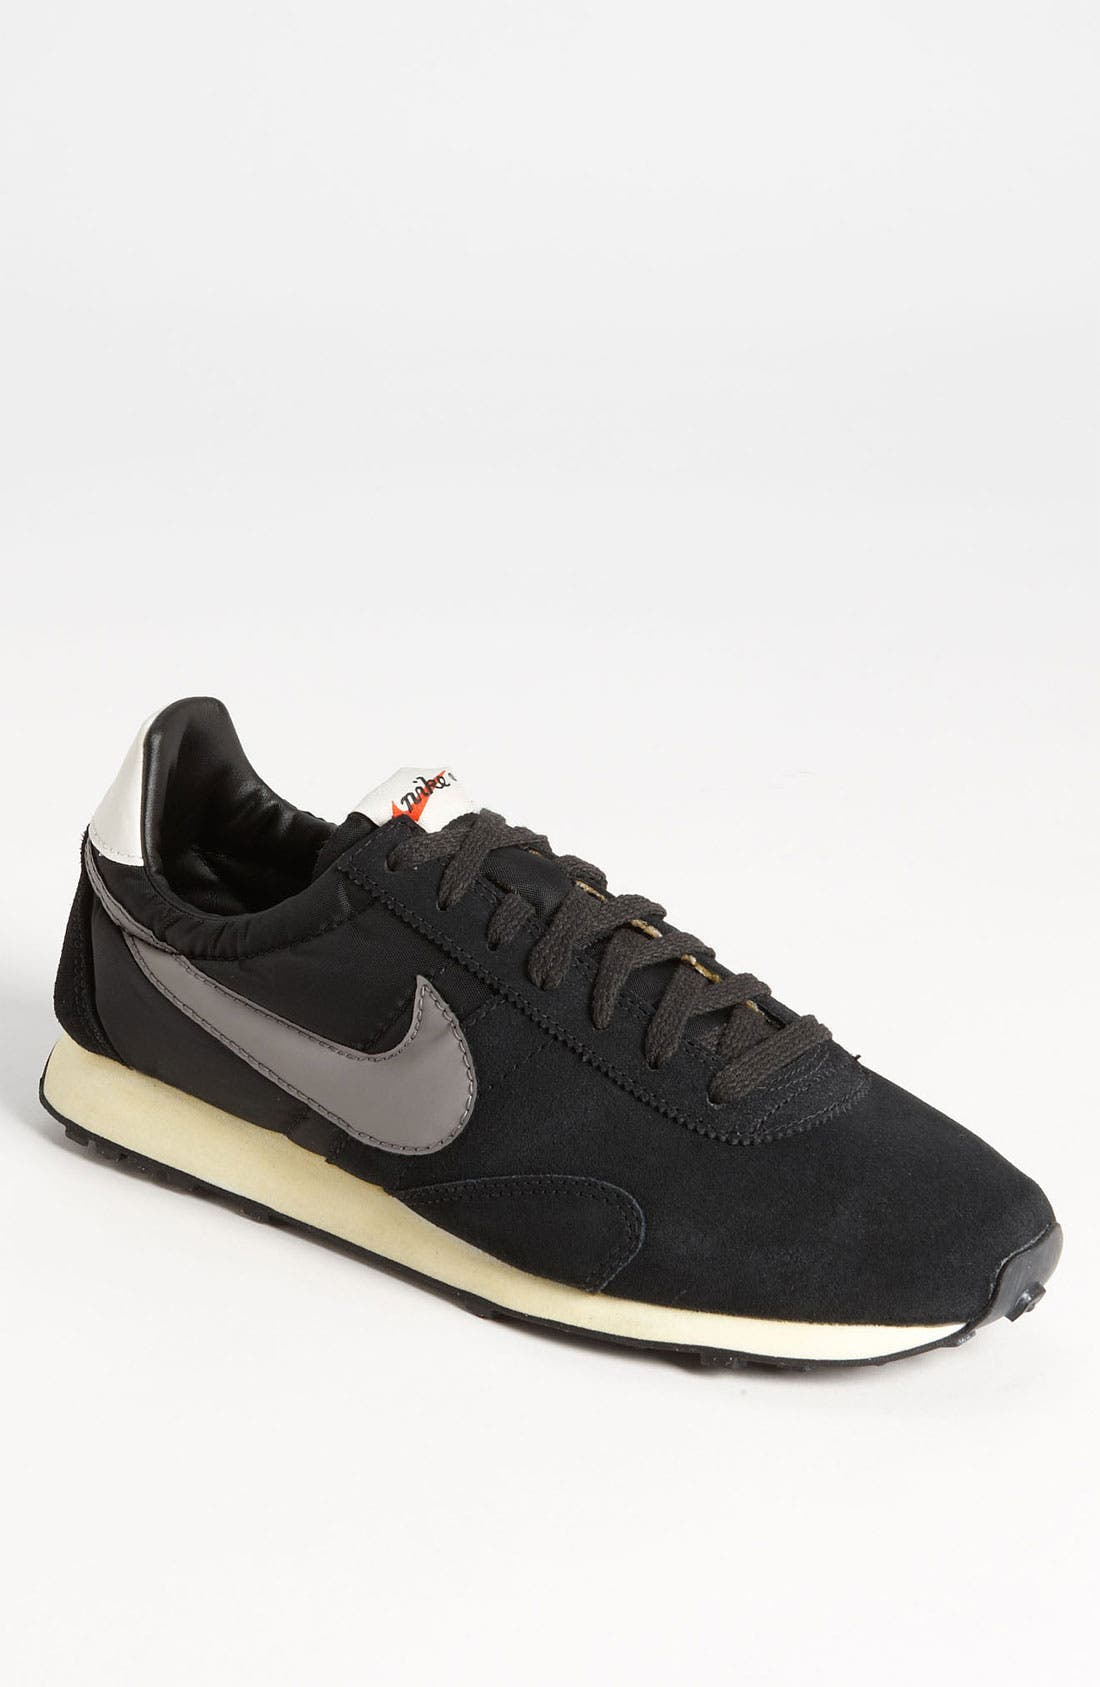 Alternate Image 1 Selected - Nike 'Pre Montreal Racer' Sneaker (Men)